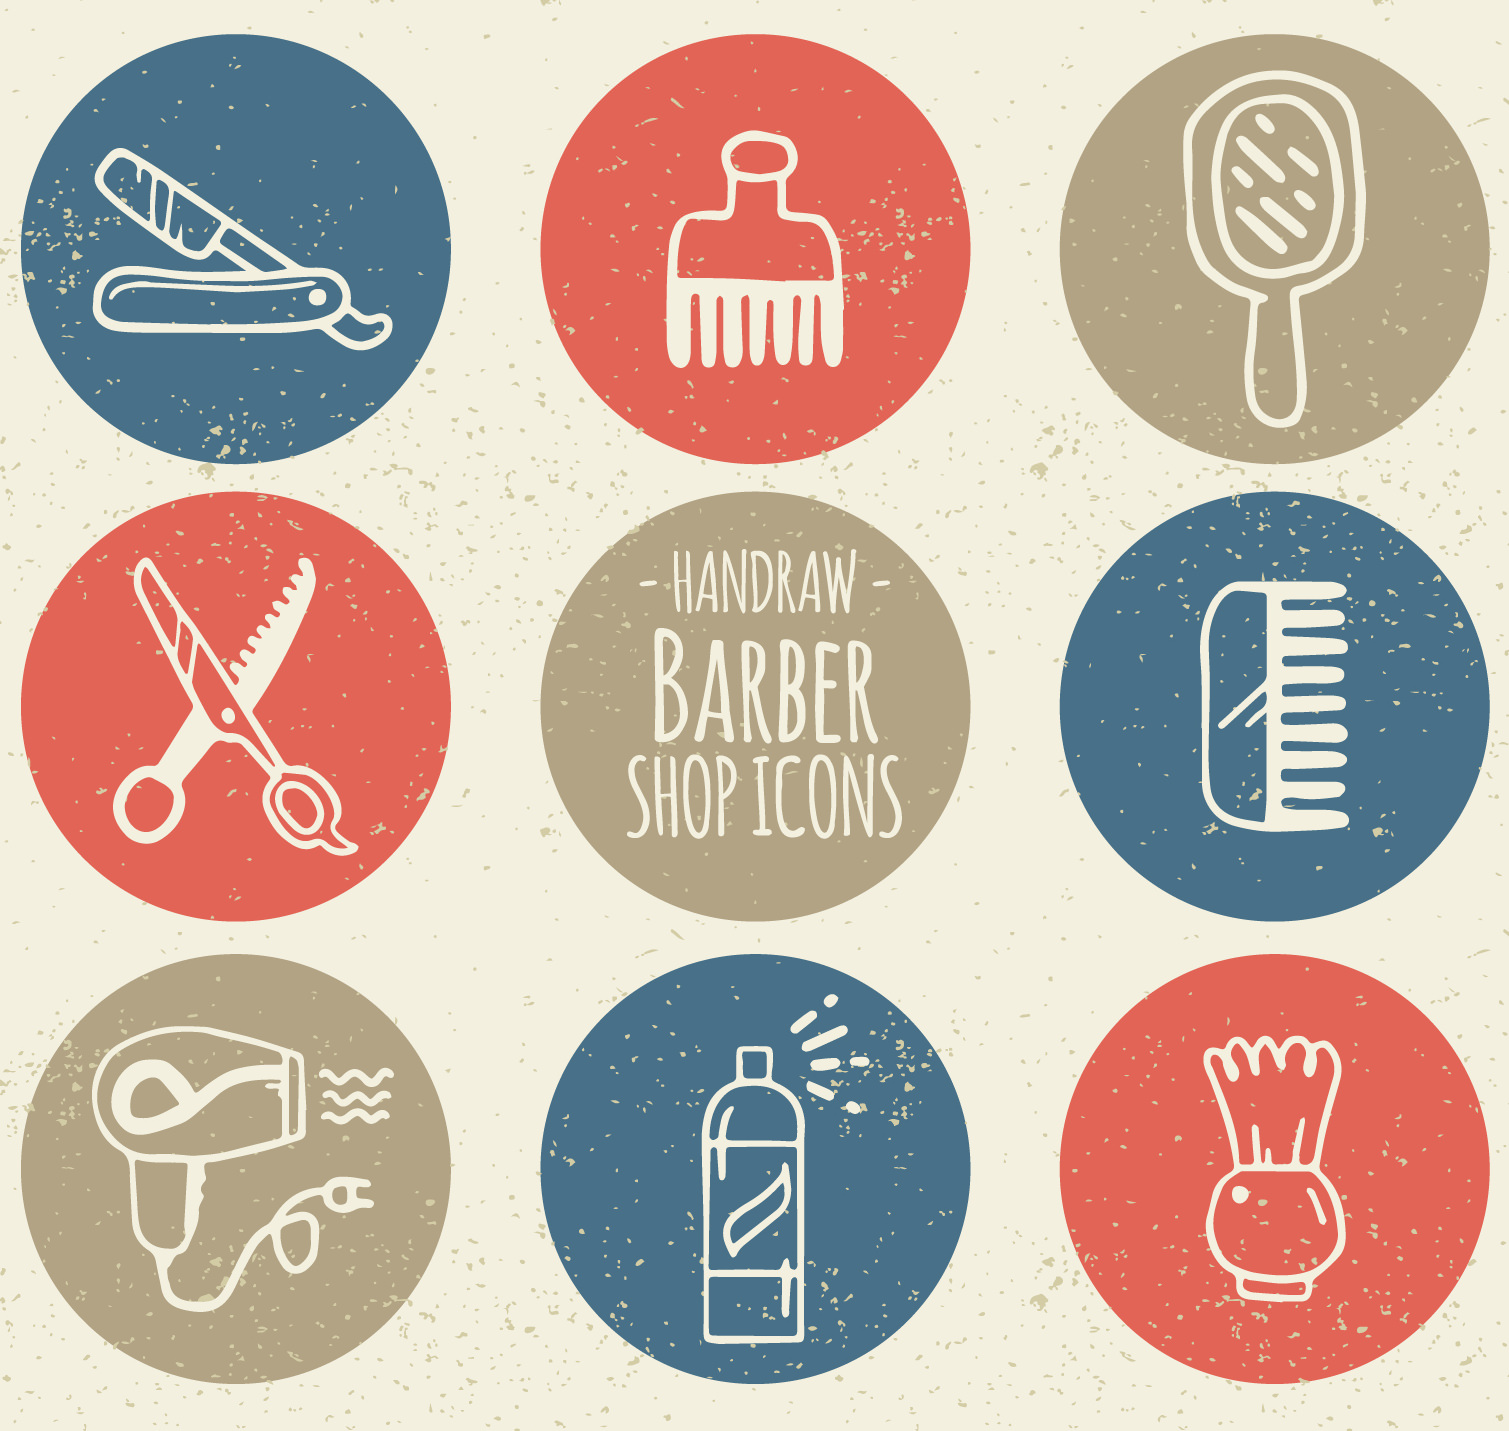 Hand Drawn Rounded Barber Shop Icons